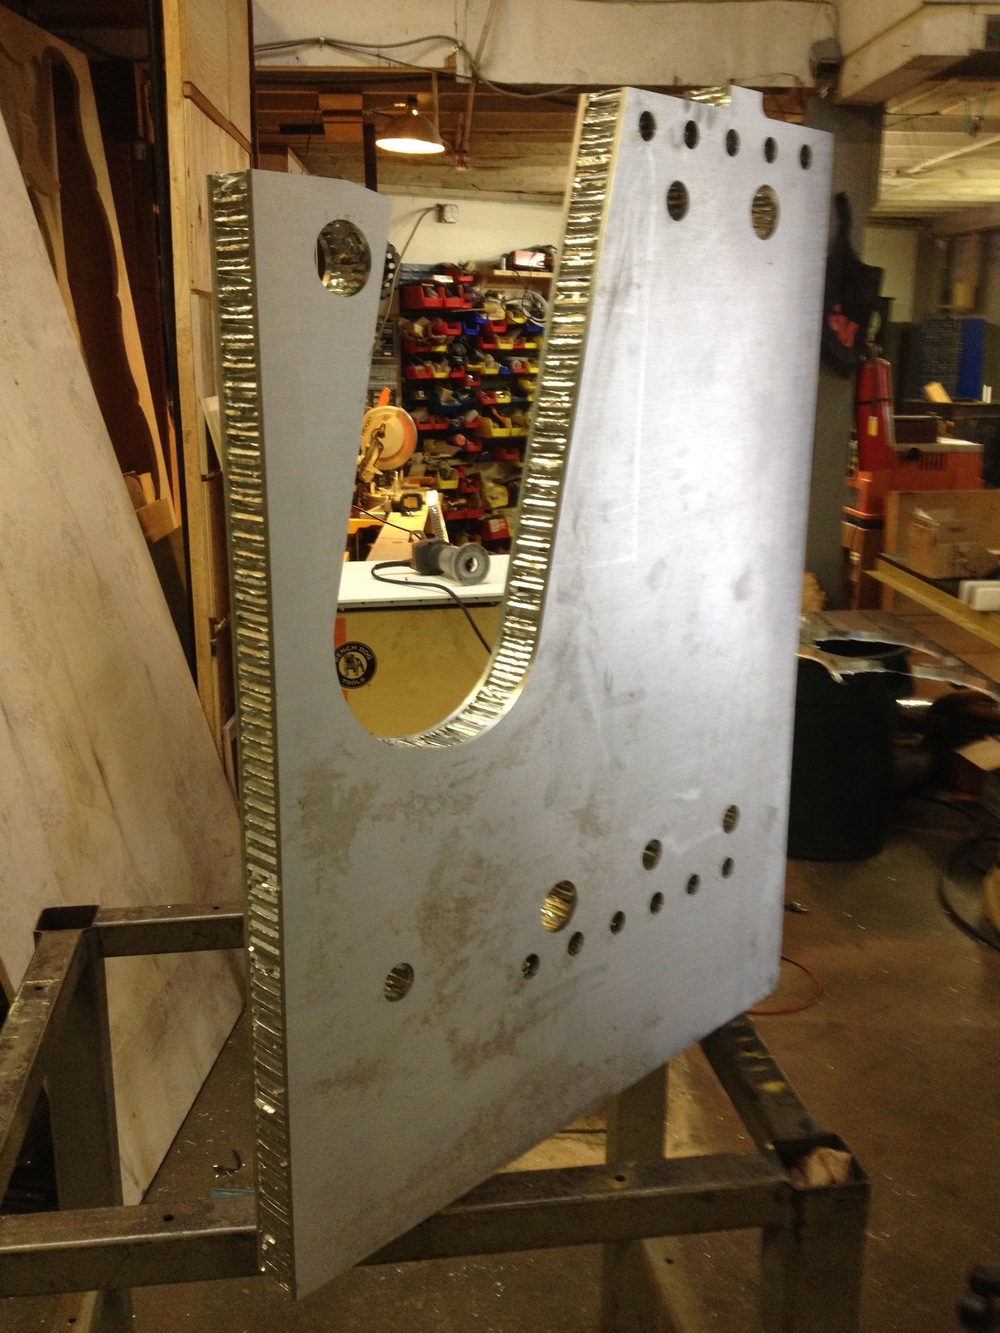 Part For Honeycomb panels. Radiorobot 2015.